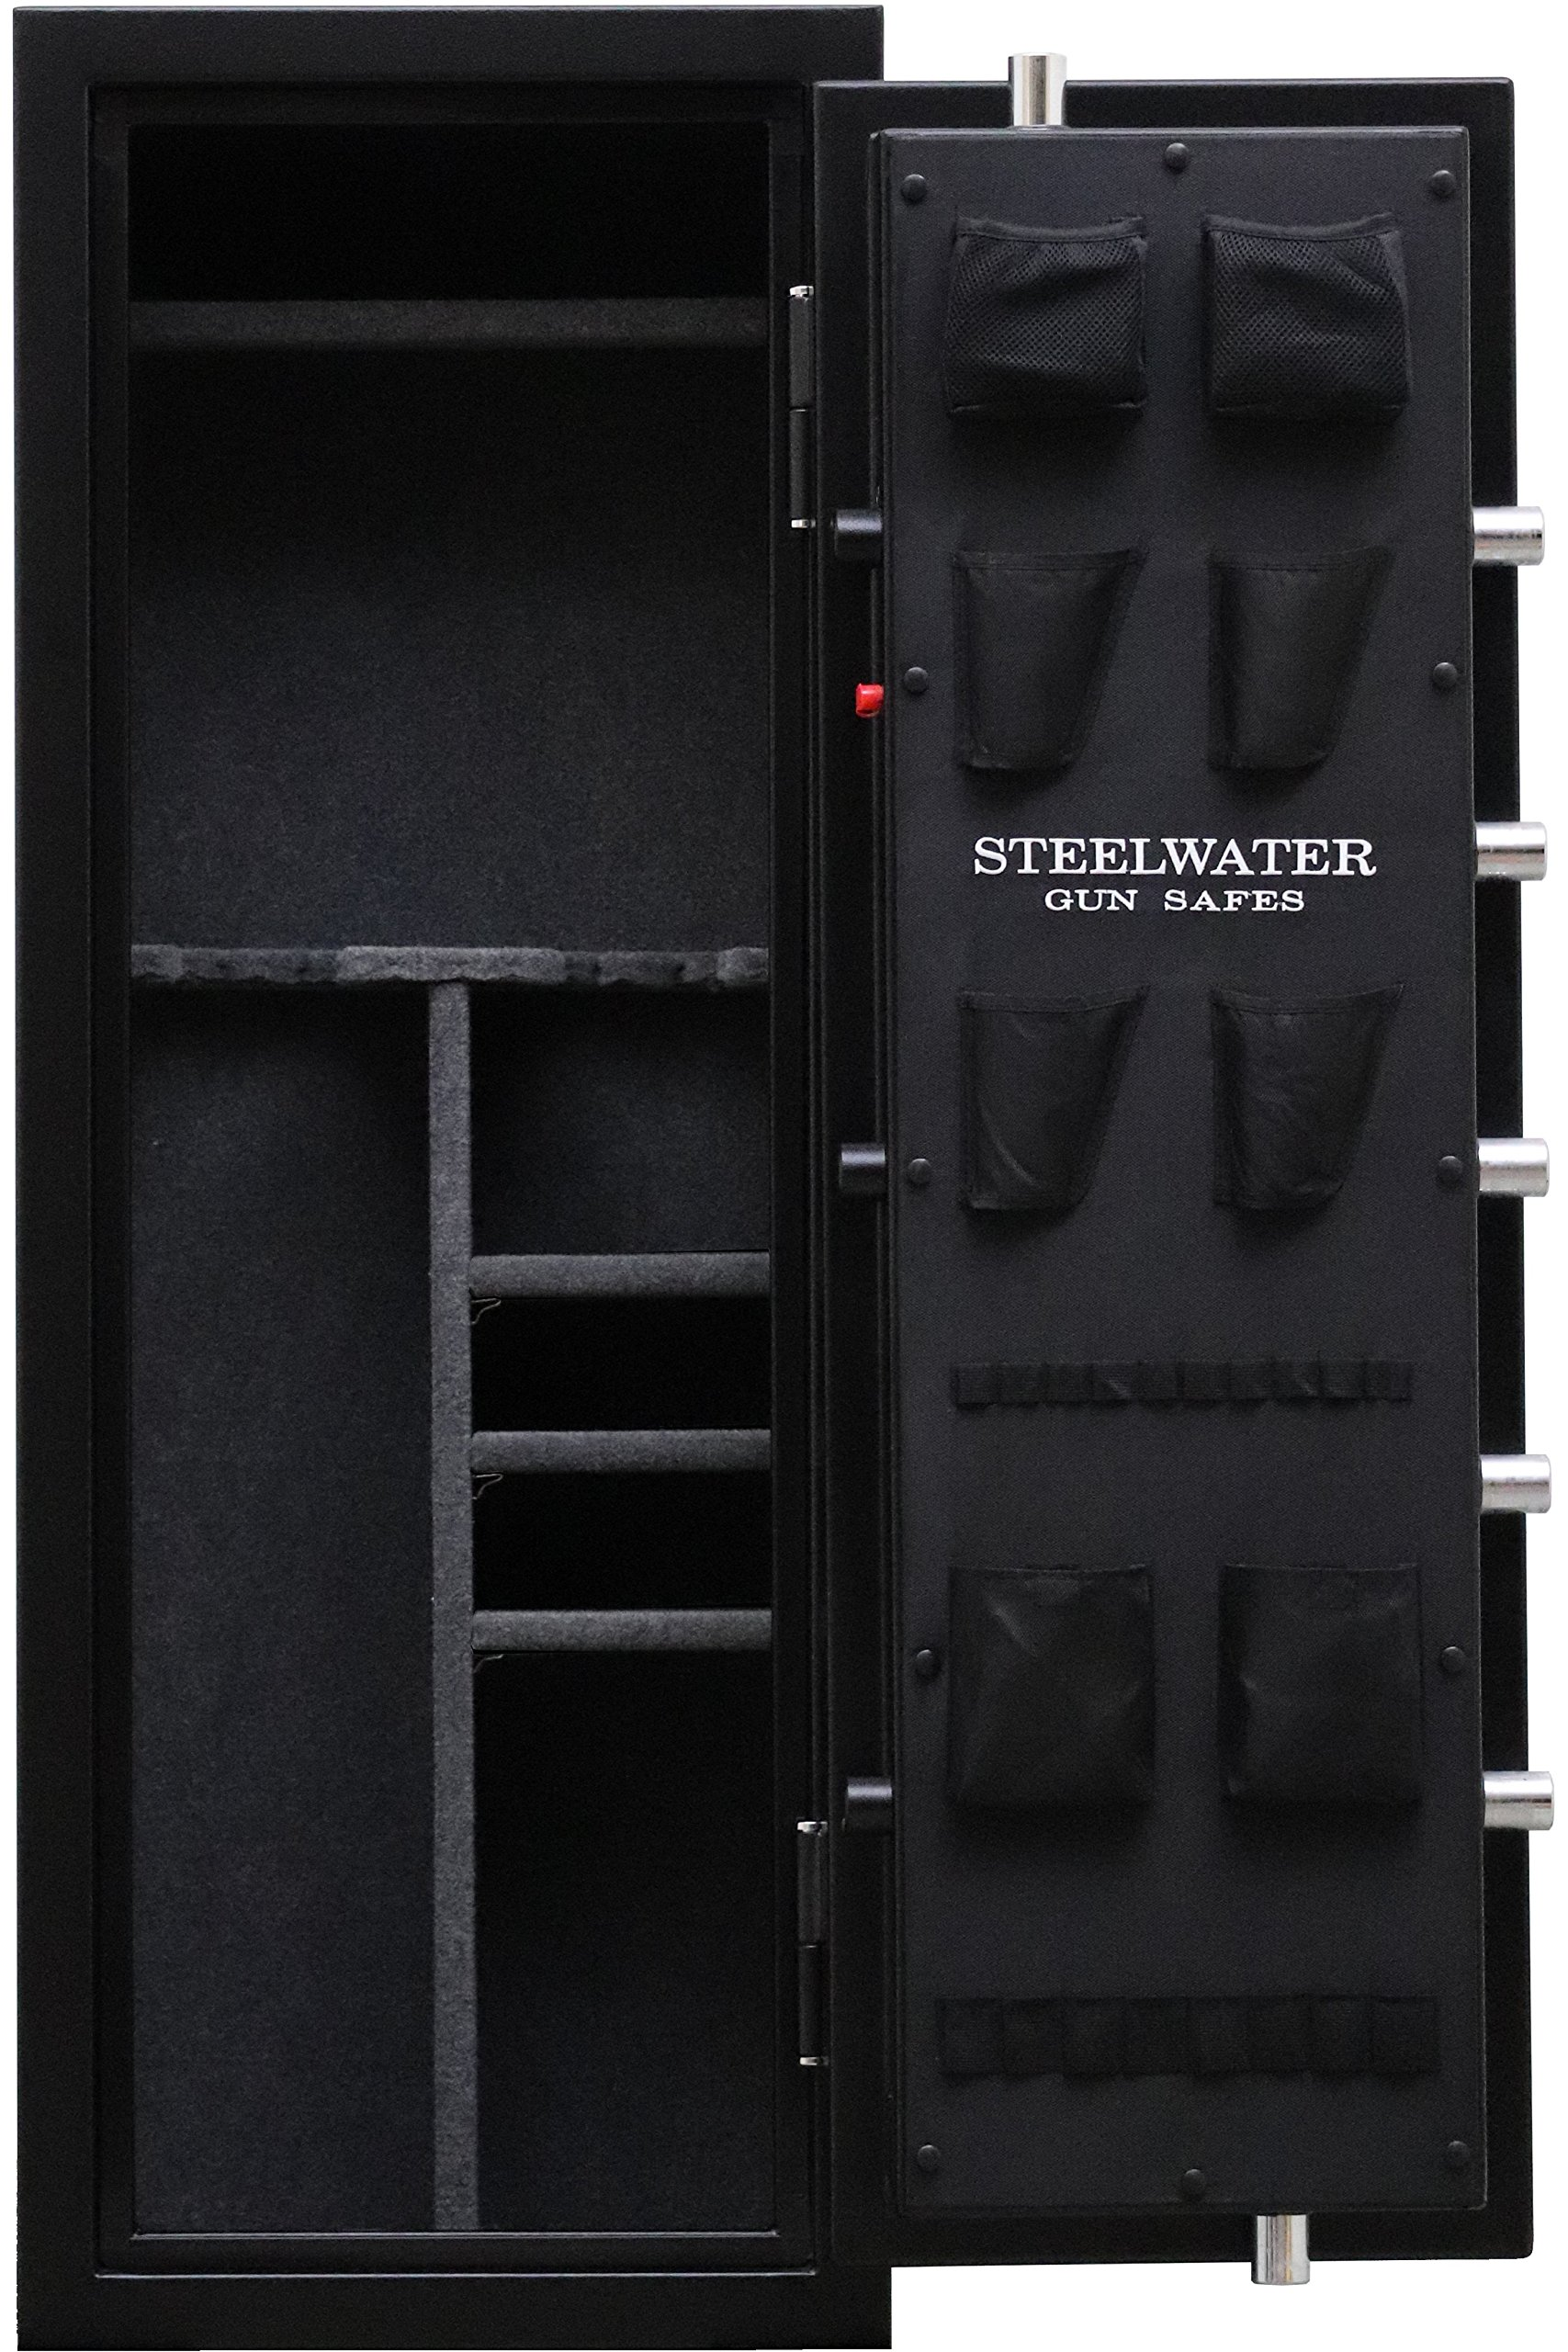 New and Improved Steelwater Standard Duty 16 Long Gun Fire Protection for 60 Minutes AMEGS592216-BLK by Steelwater Gun Safes (Image #2)